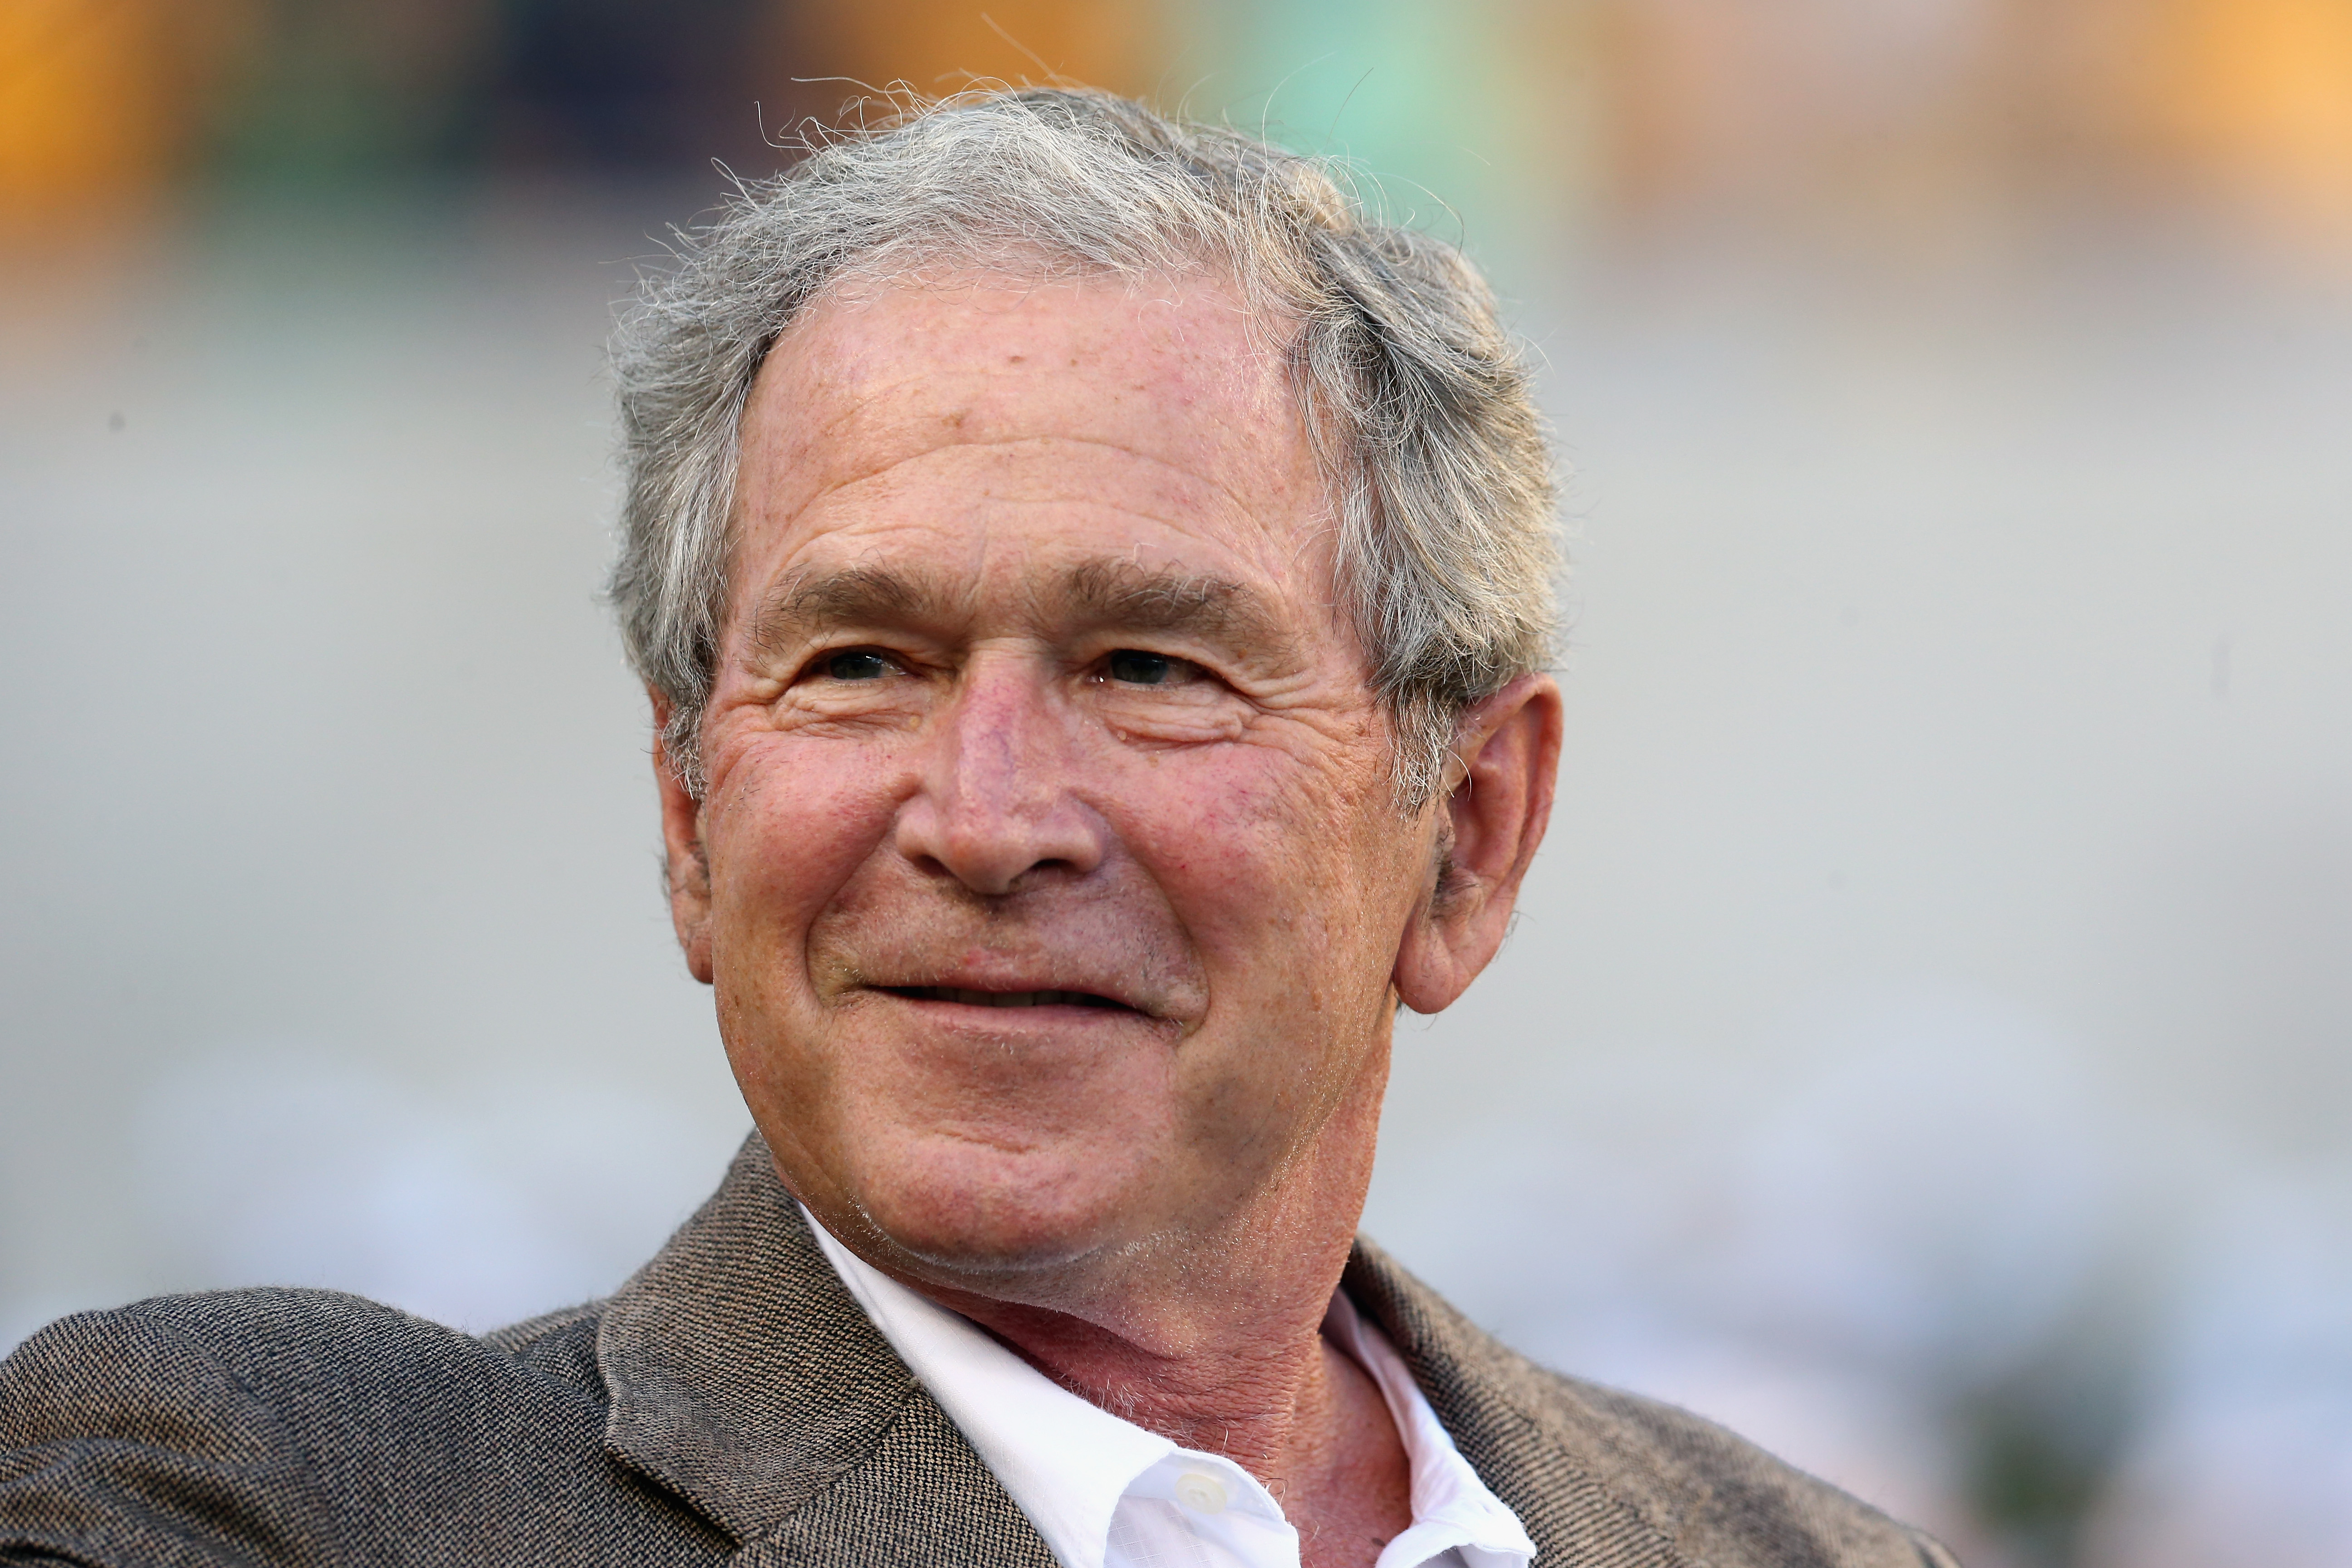 george w bush on poncho incident response to inauguration cbs news. Black Bedroom Furniture Sets. Home Design Ideas